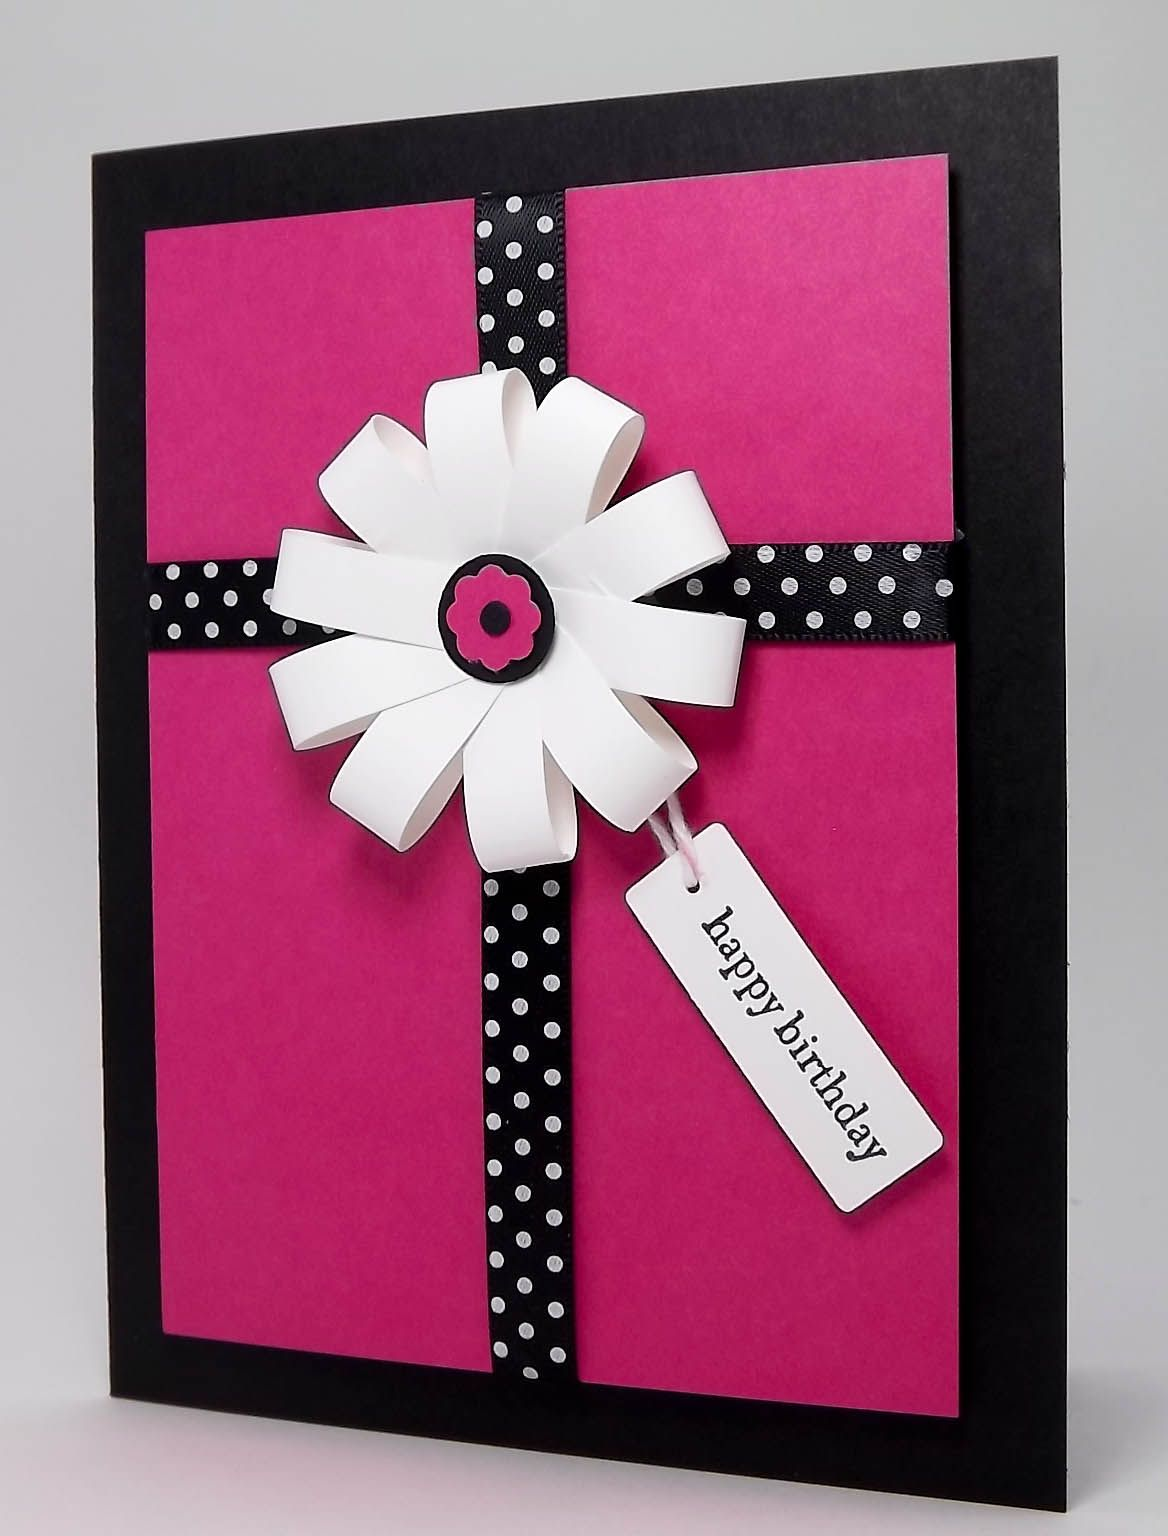 Ideas To Make A Greeting Card Part - 46: Happy Birthday Card. Fuchsia Pink And Blanc U0026 White Colors. Really Graphic  And Simple